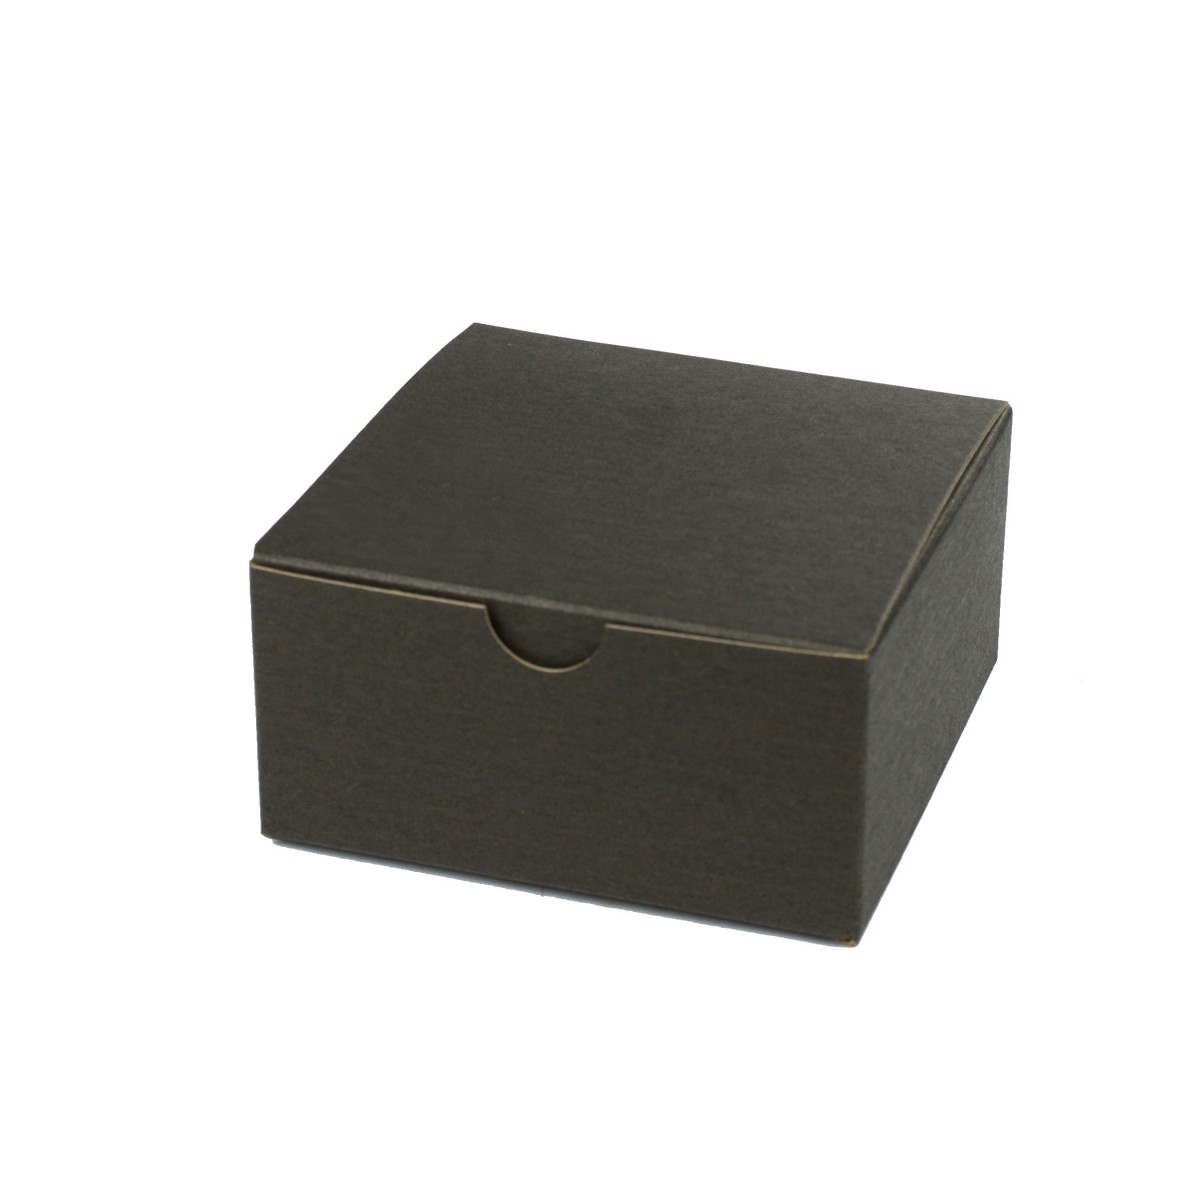 4 x 4 x 2 BLACK PINSTRIPE TUCK-TOP GIFT BOXES